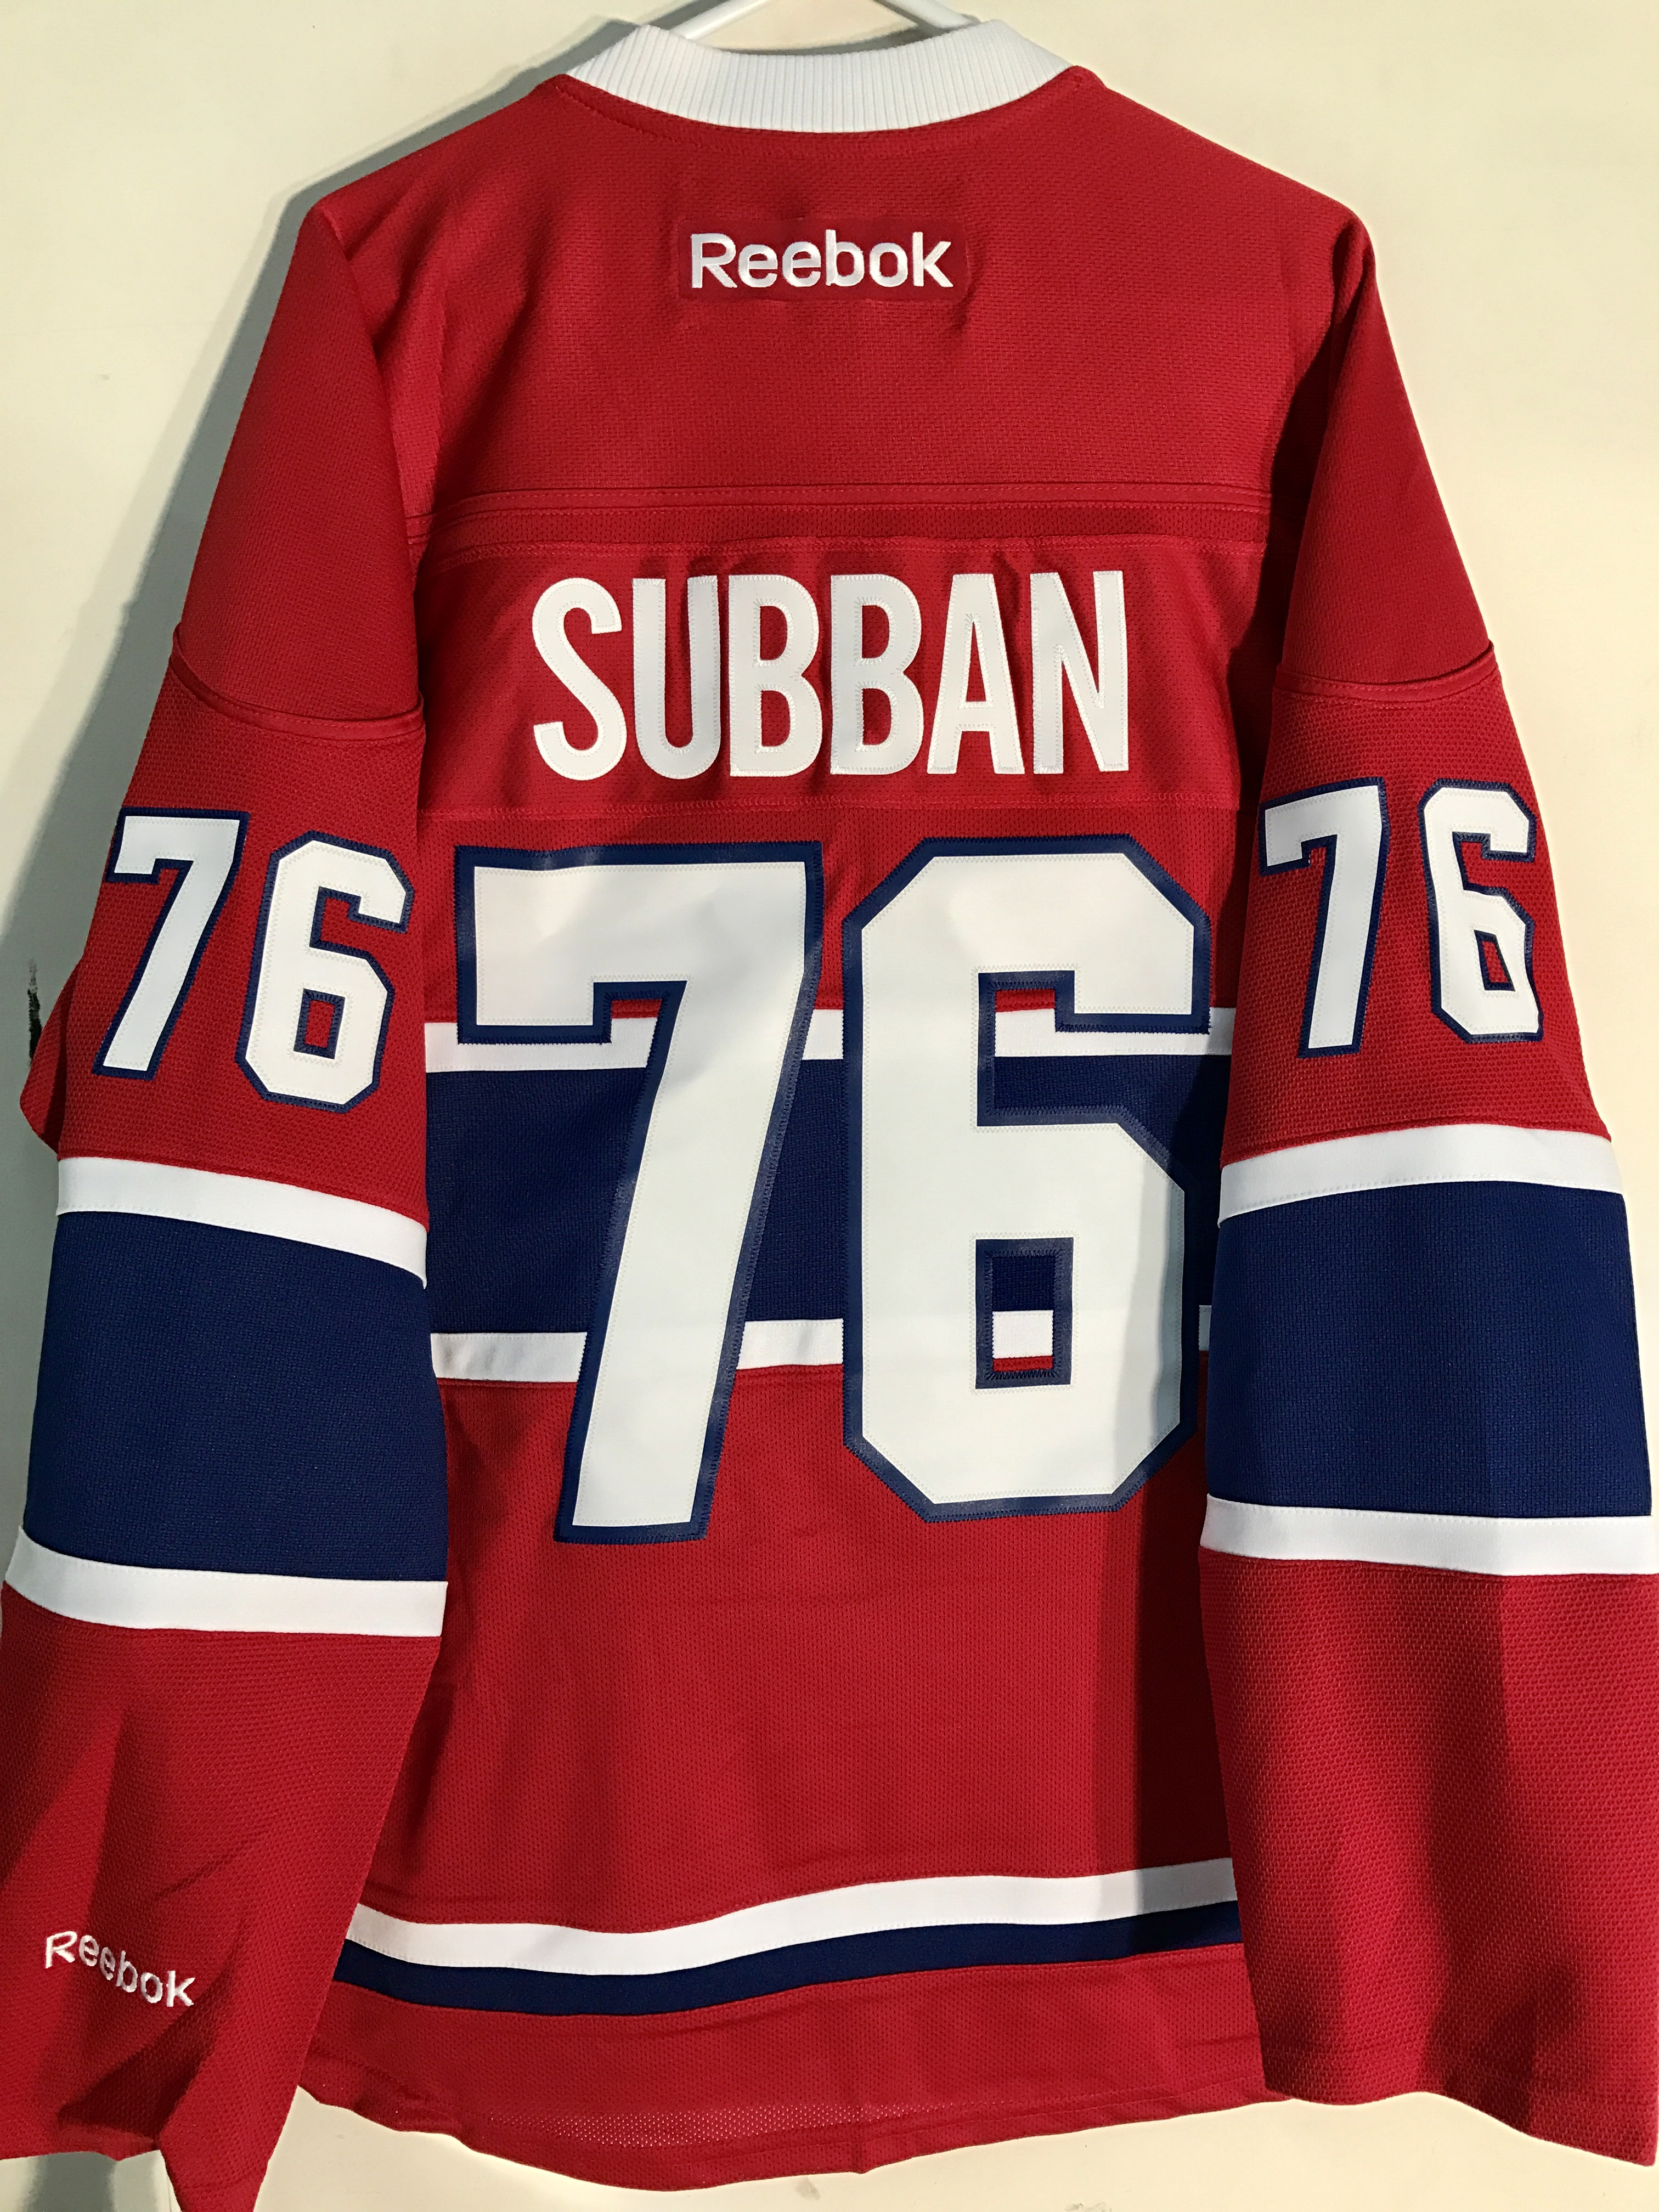 33a5f1156e0 Reebok Premier NHL Jersey Montreal Canadiens P.K. Subban Red sz S